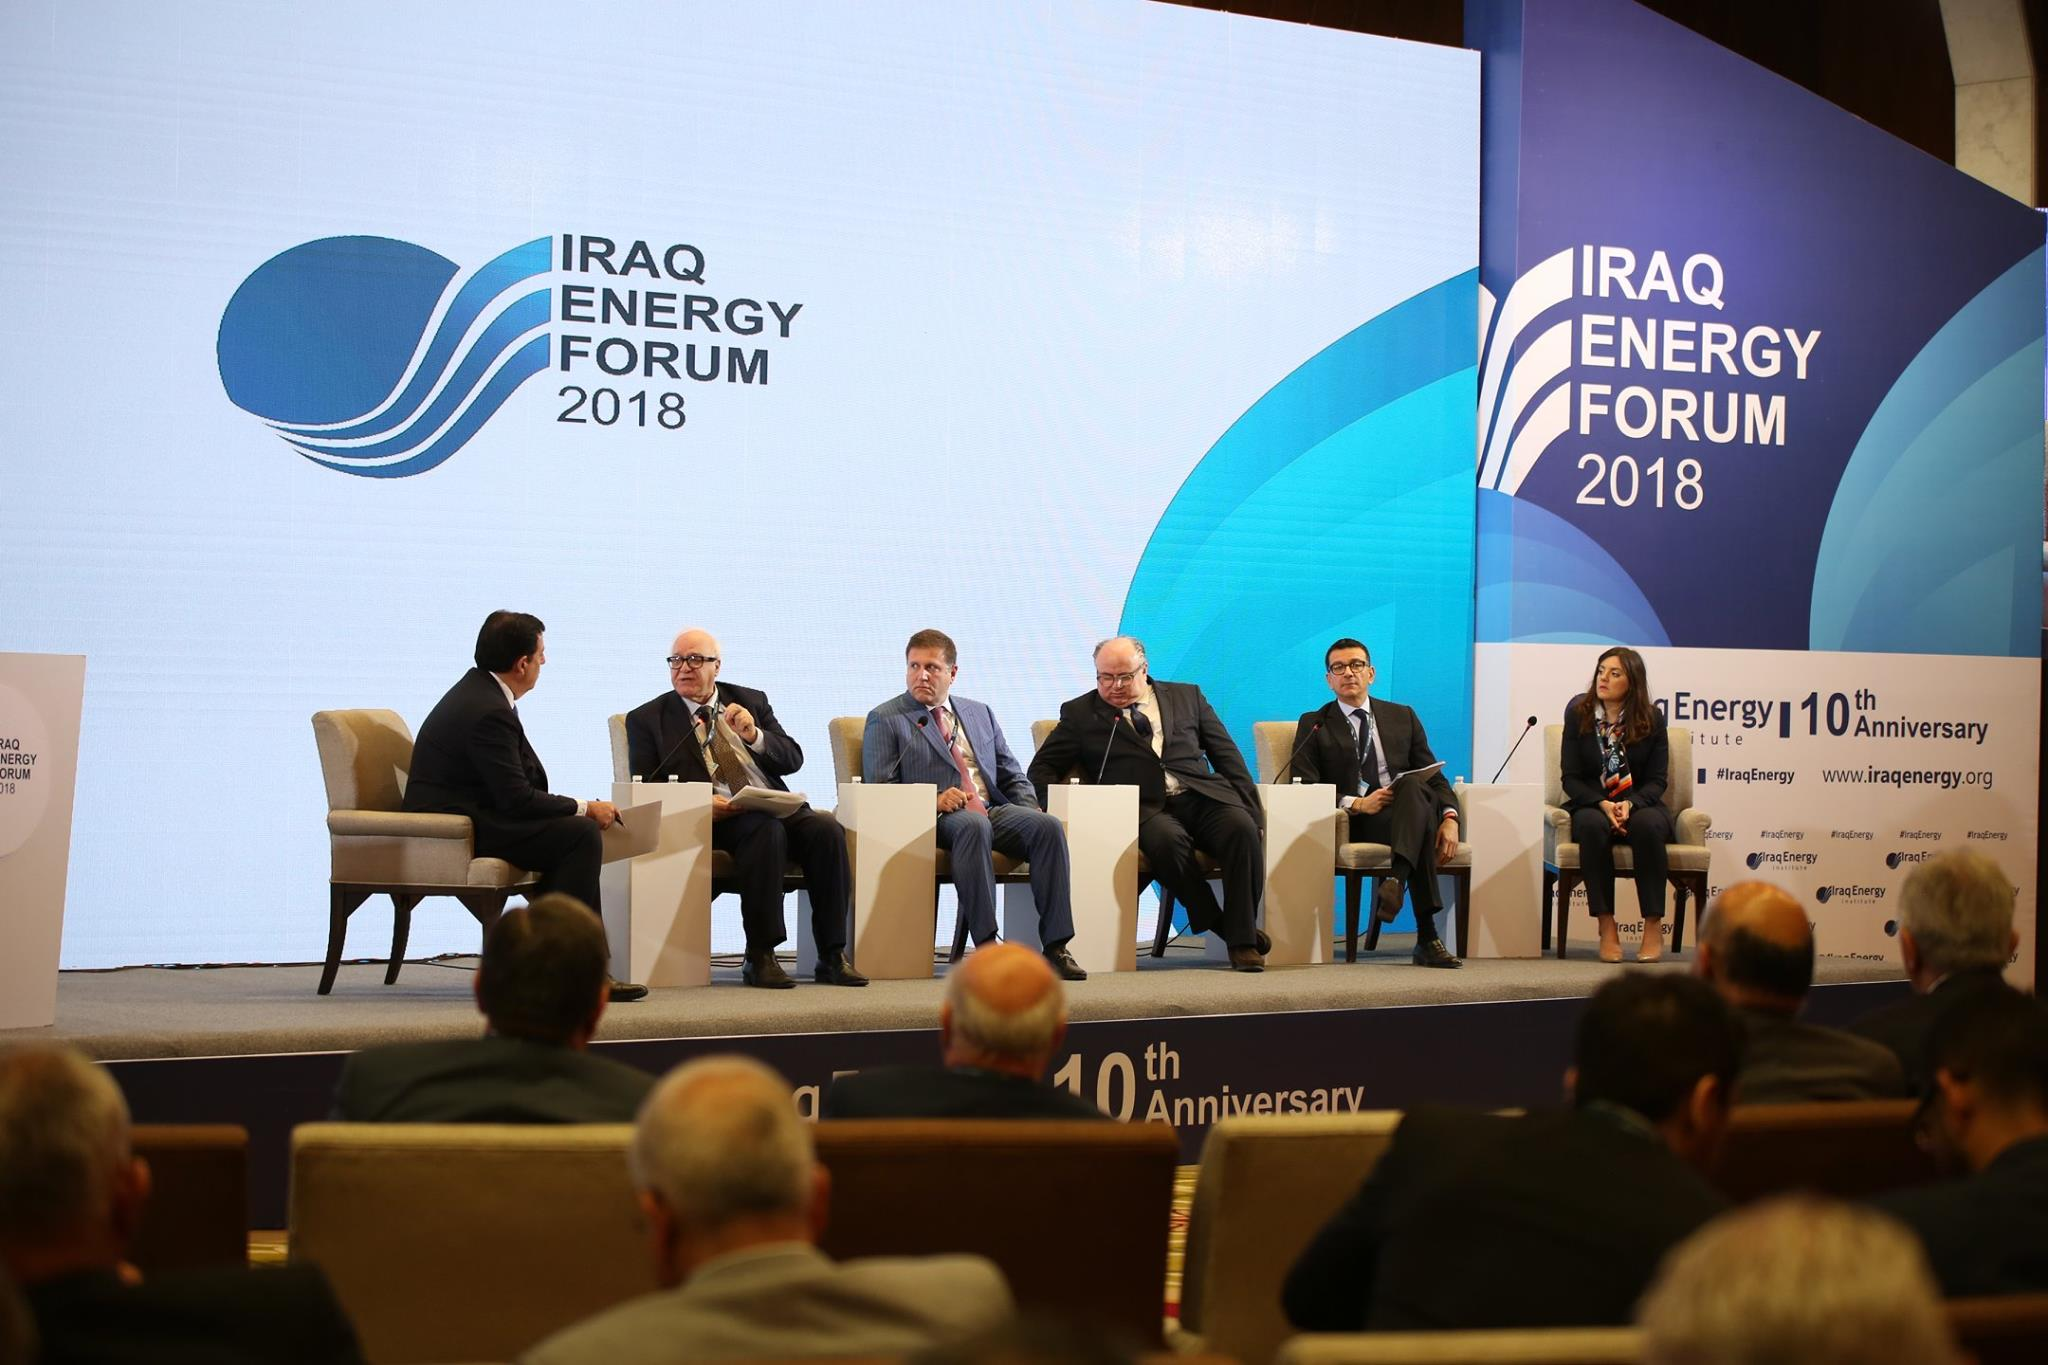 IEF2019 | Iraq Energy Institute